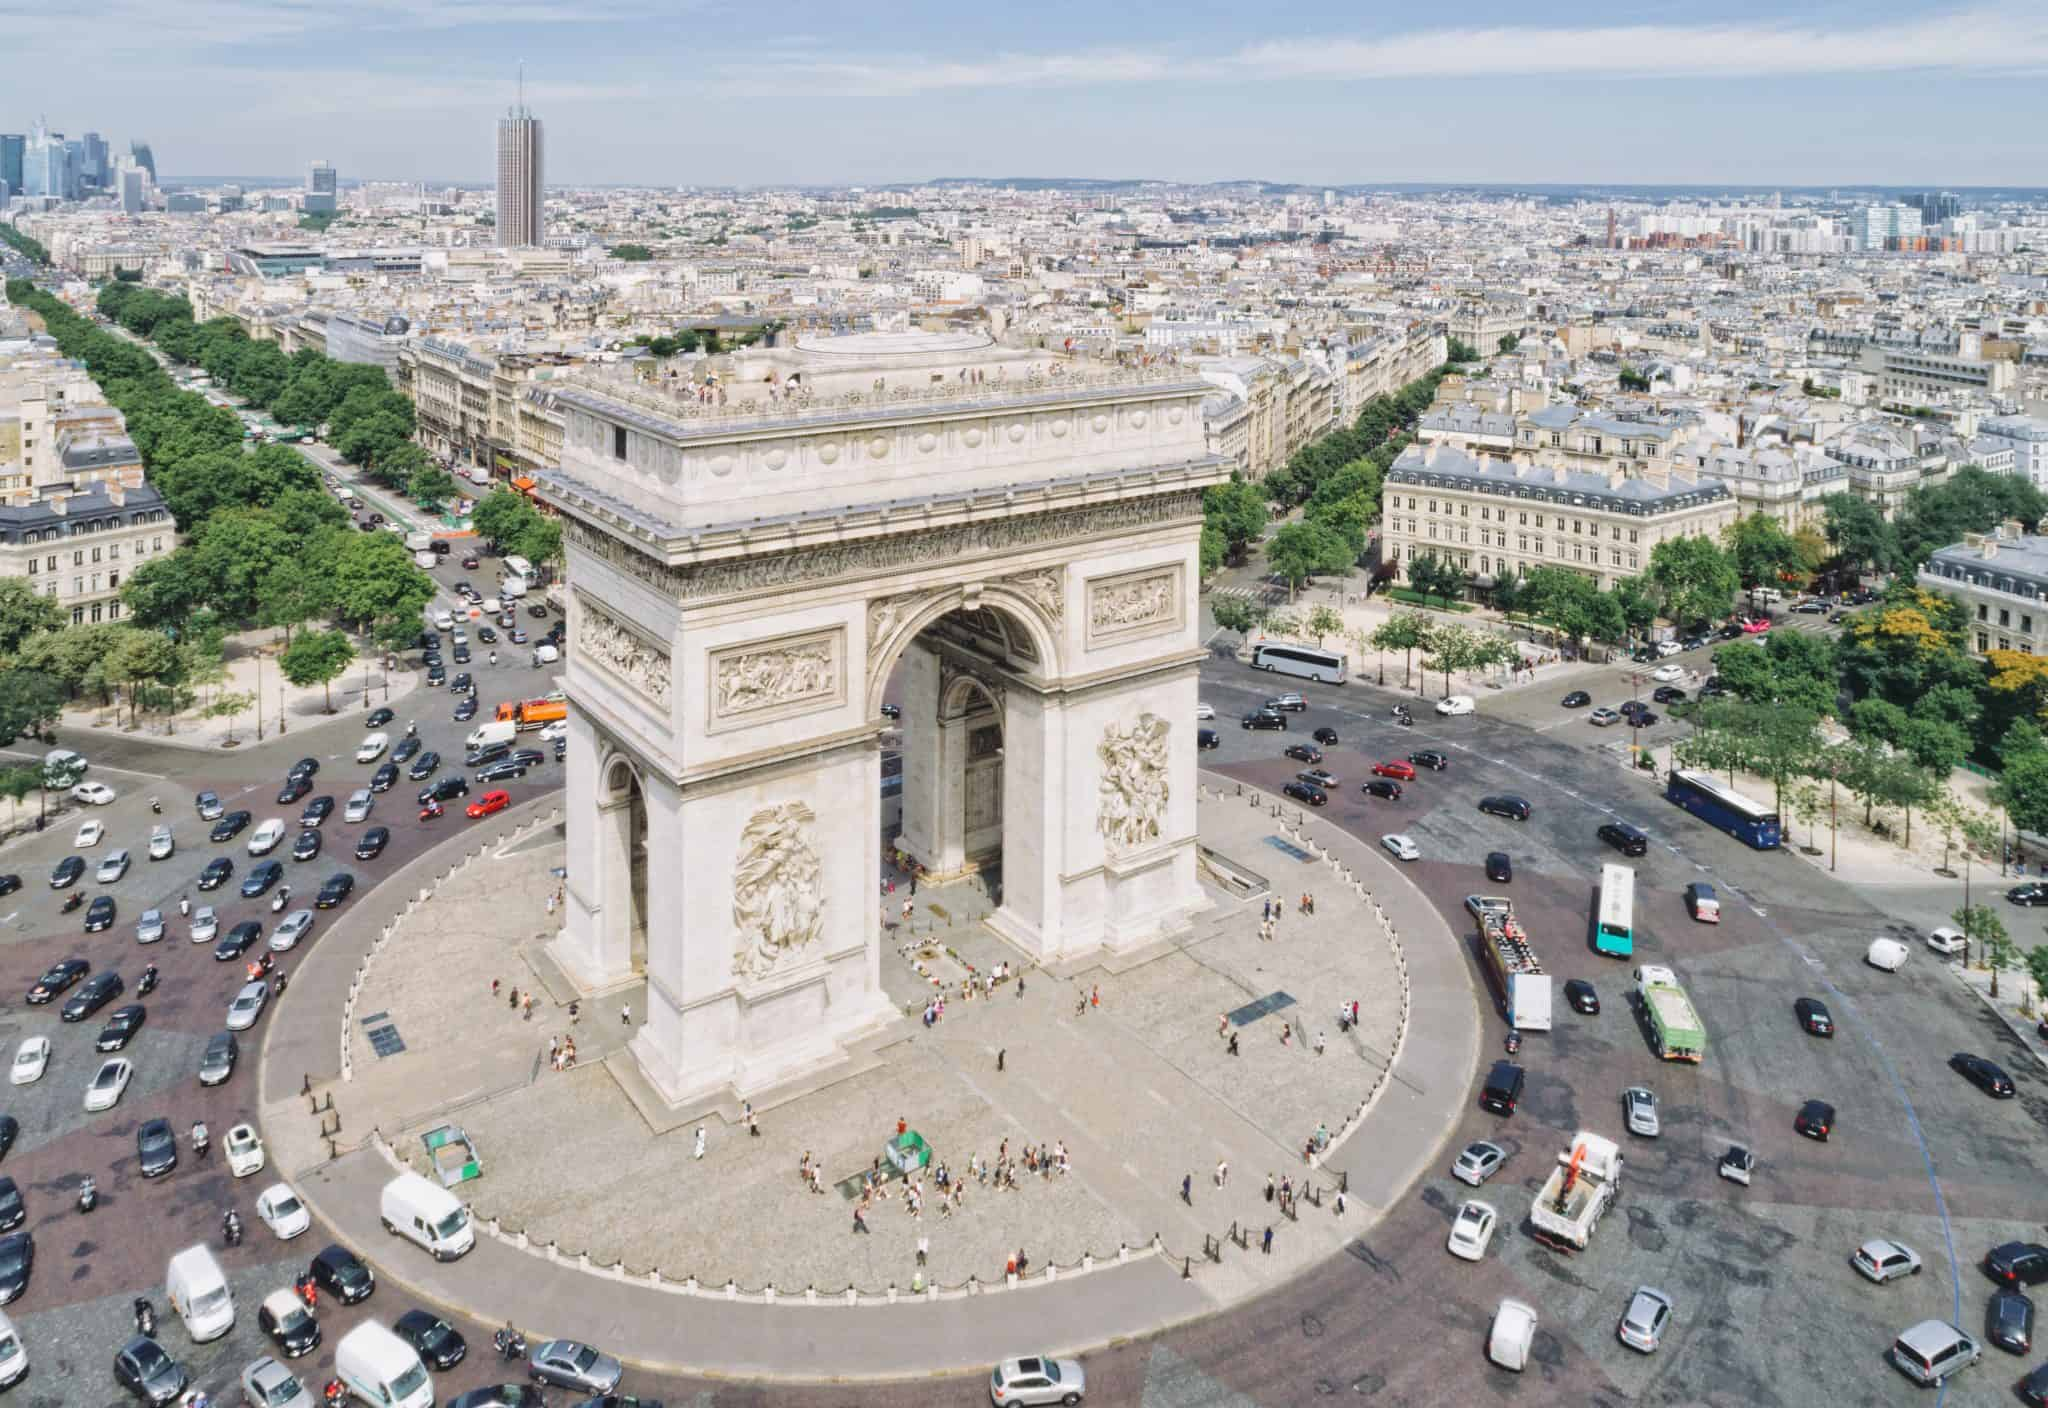 Traffic around the Arc de Triomphe in Paris - a stunning sight for a first visit to Paris